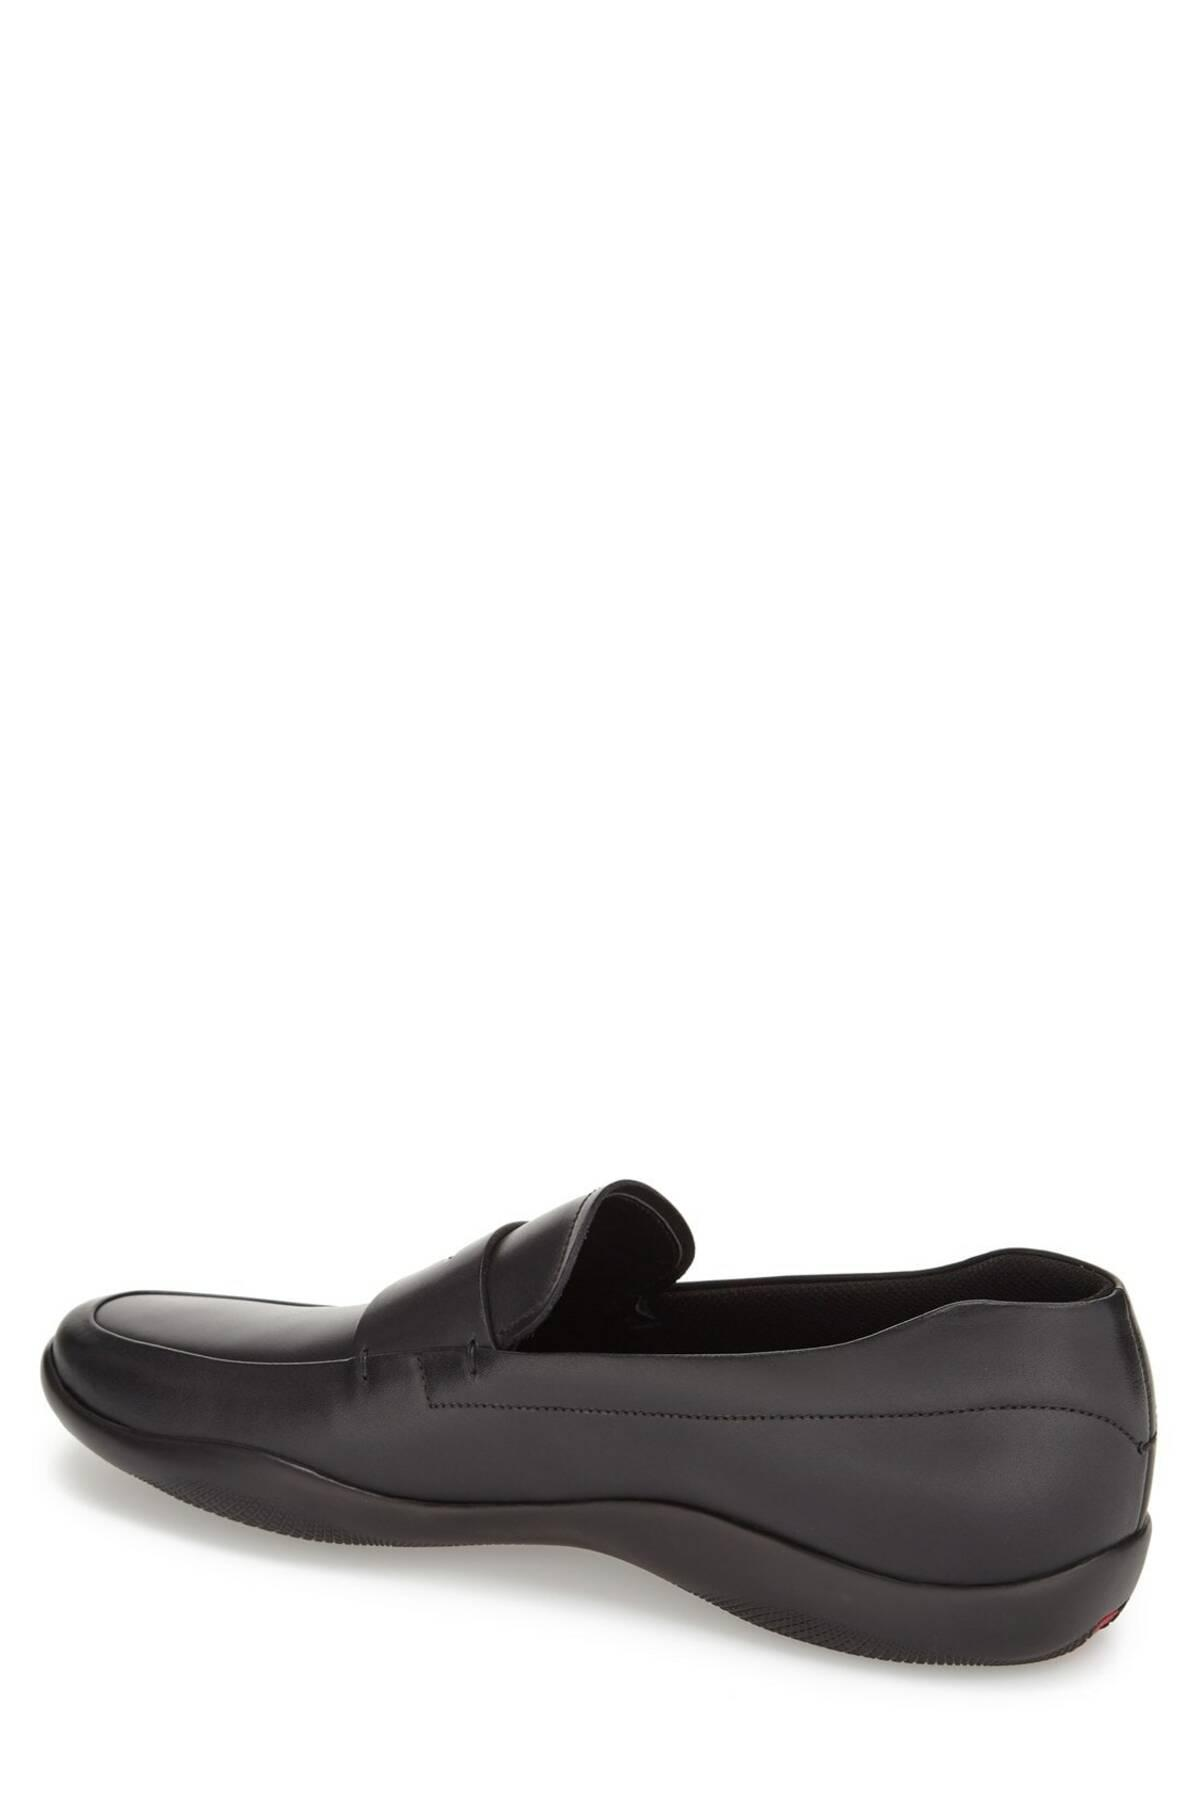 8ea5e2665 Prada Linea Rossa New Toblak Penny Loafer (men) in Black for Men - Lyst